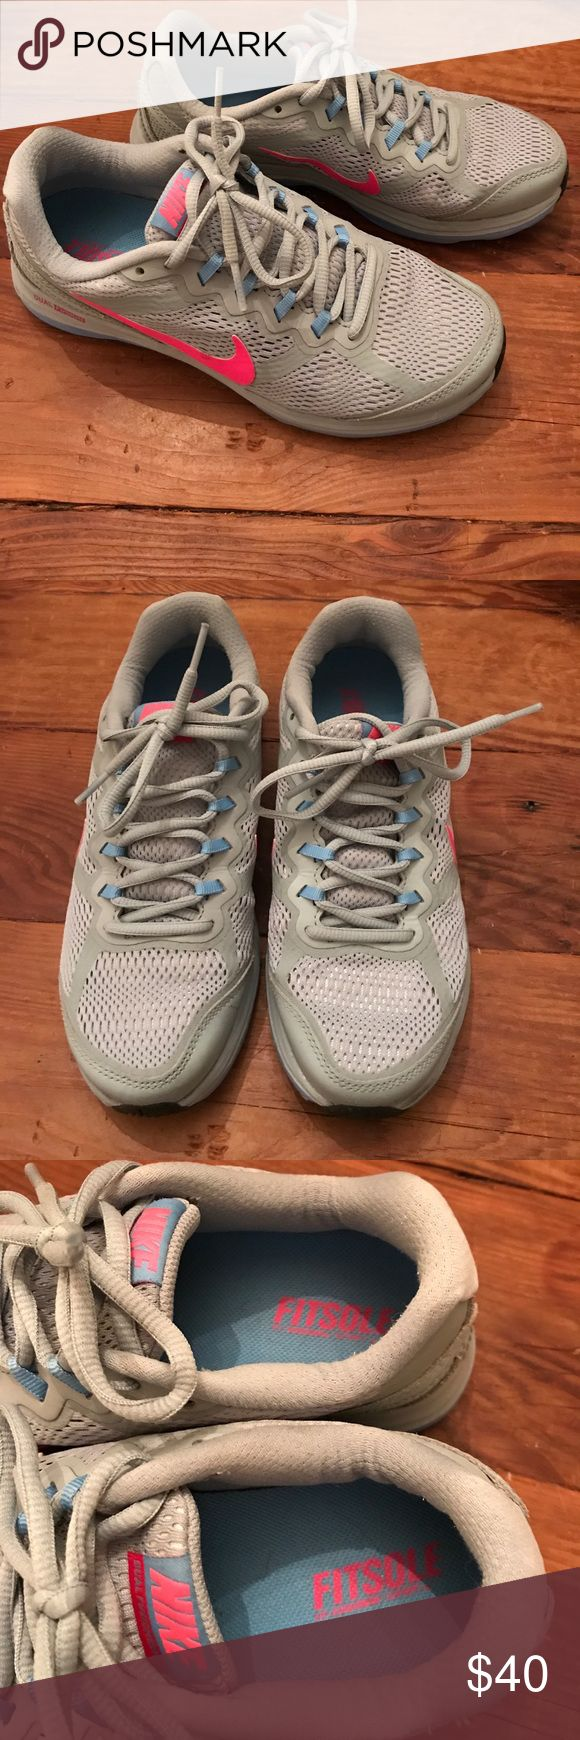 Nike Dual Fusion Run Grey with Pink Swoosh Fitsole Nike Dual Fusion Run Grey with Pink Swoosh, Fitsole. Size 6.5. Excellent condition! Worn once or twice. Nike Shoes Athletic Shoes